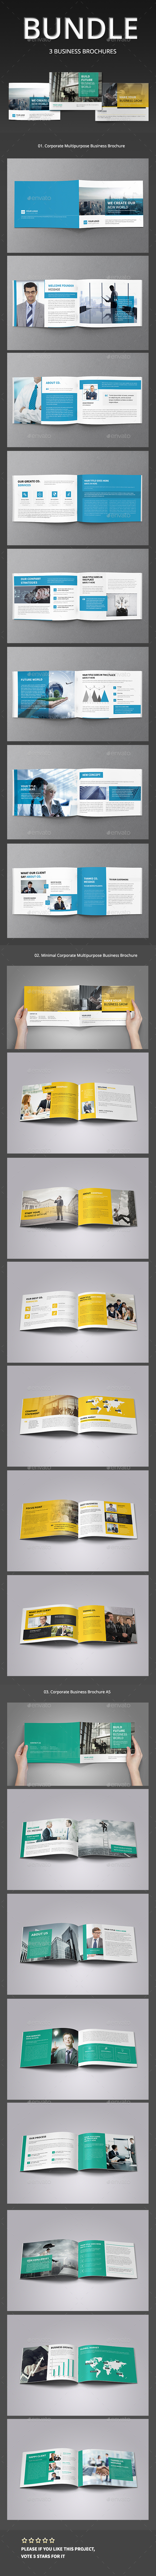 A5 Corporate Business Brochure Bundle  - Corporate Brochures